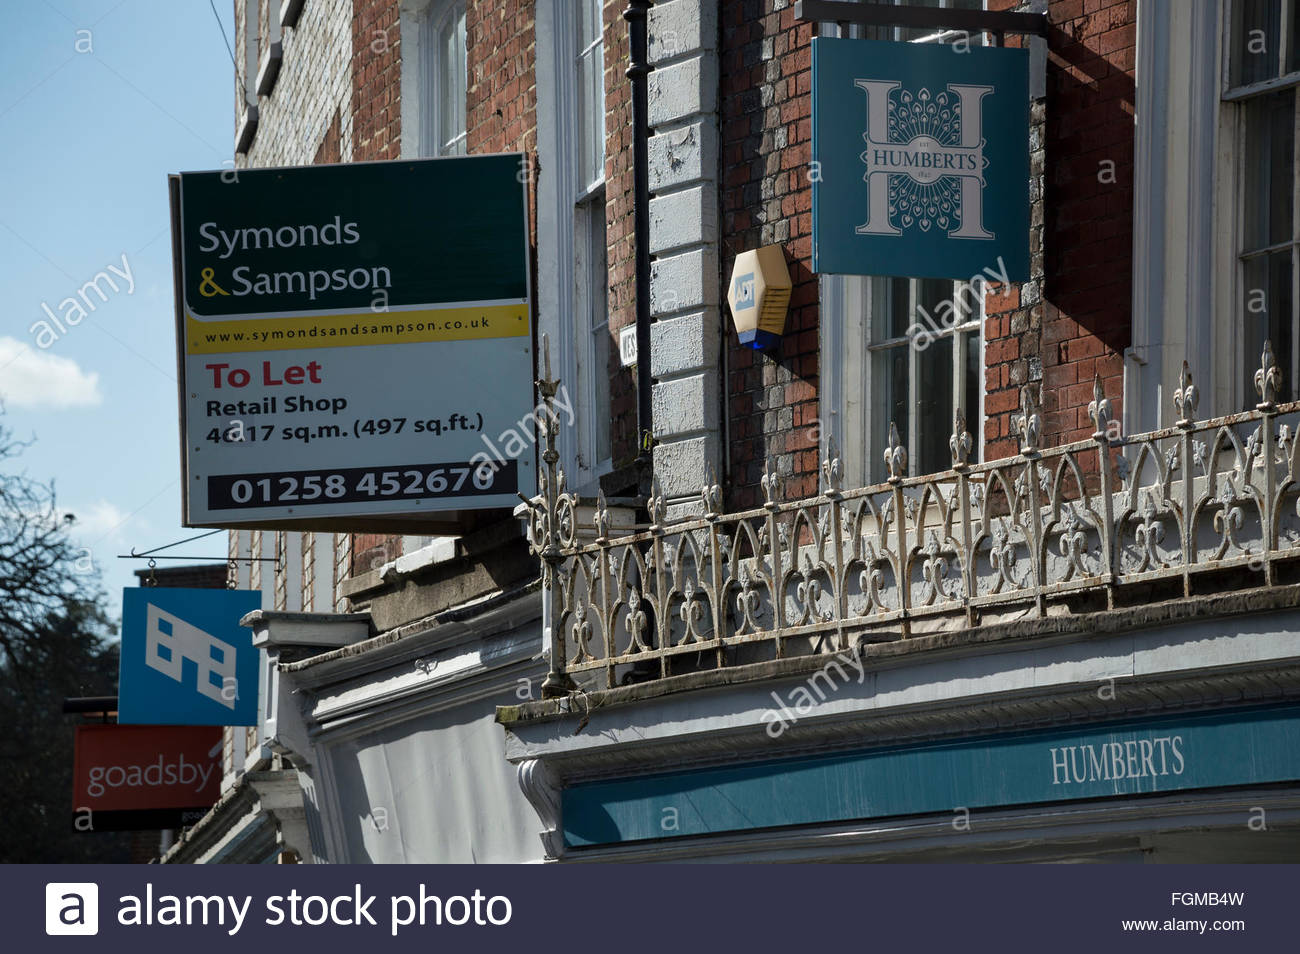 Numerous Estate and Letting Agent signs and boards above premises in Market Place, Blandford Forum, Dorset, England - Stock Image